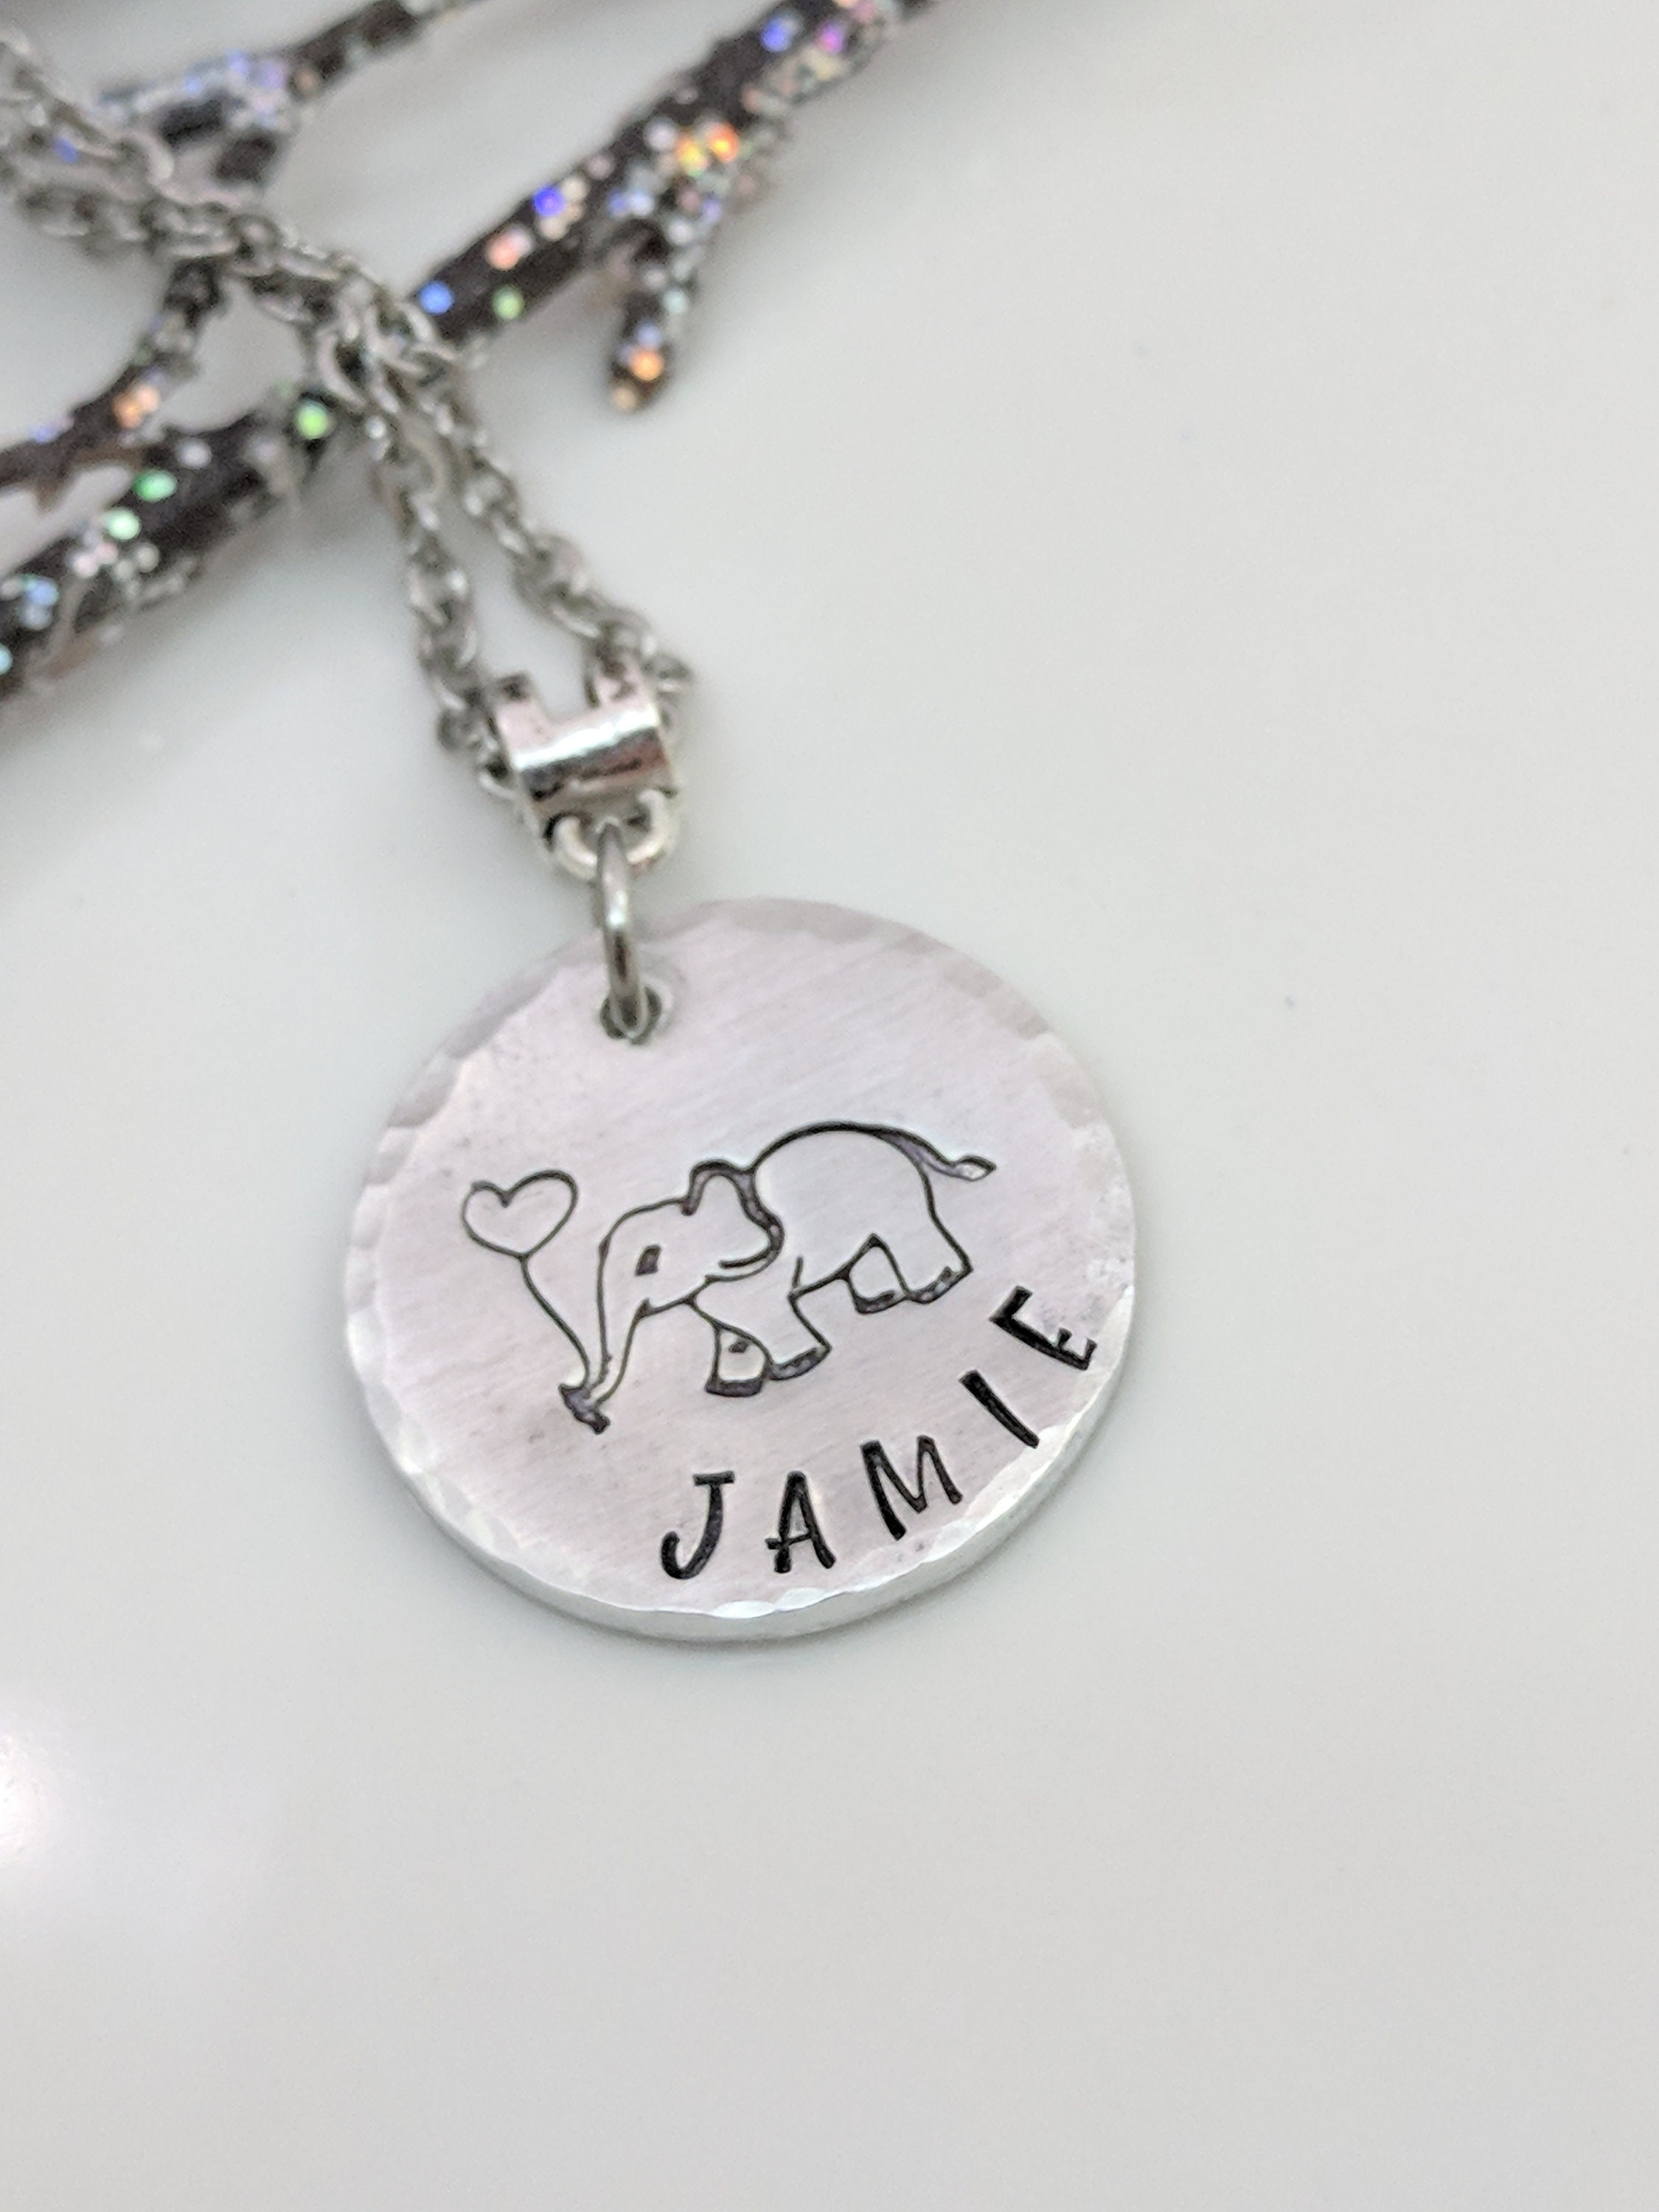 Personalized Elephant Necklace Name Jewelry Best Friends Gift Birthday Lover Handmade For Her Gifts